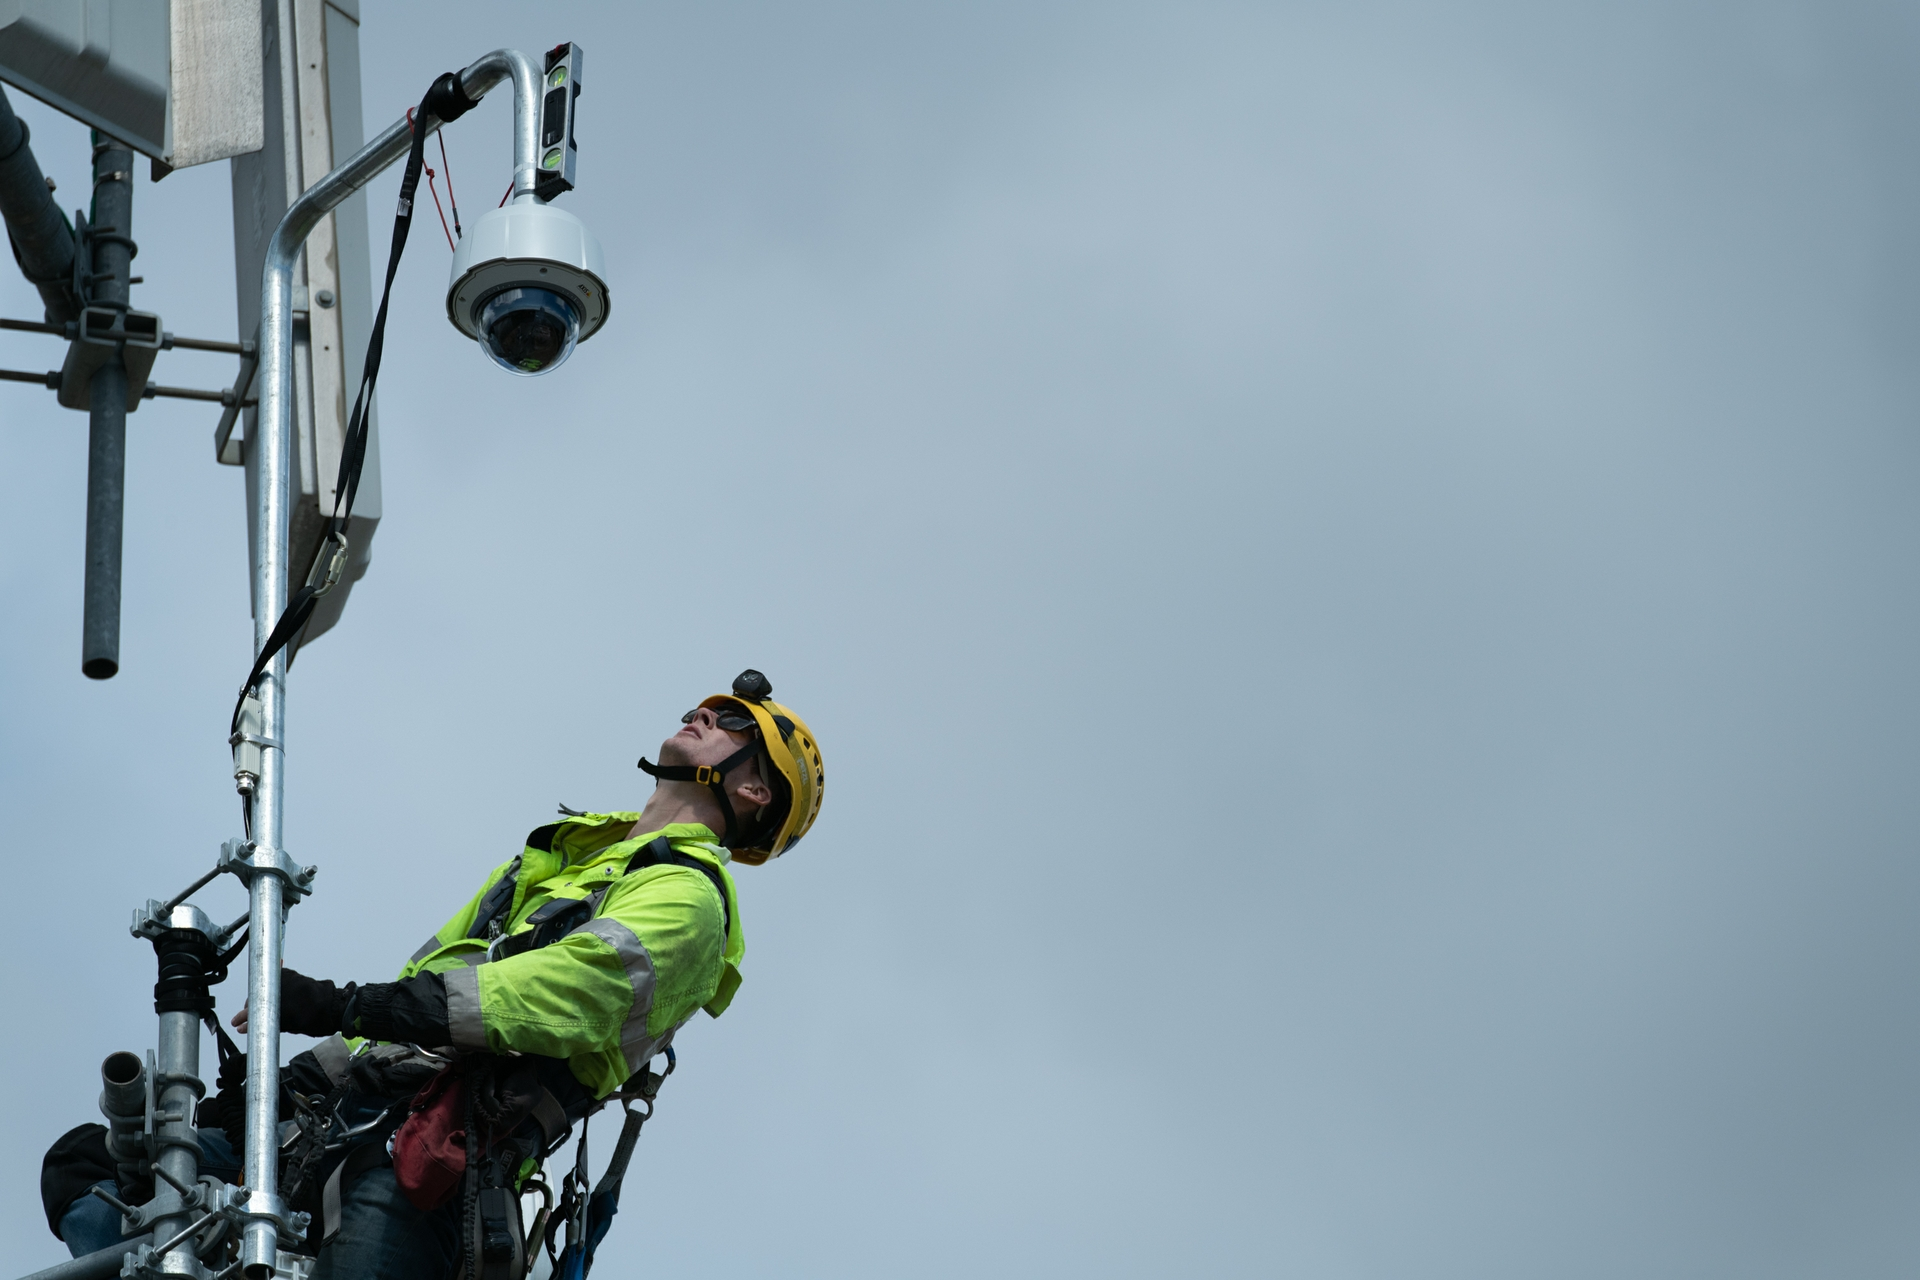 A worker looks up at a wildfire monitoring camera to ensure it was mounted properly.